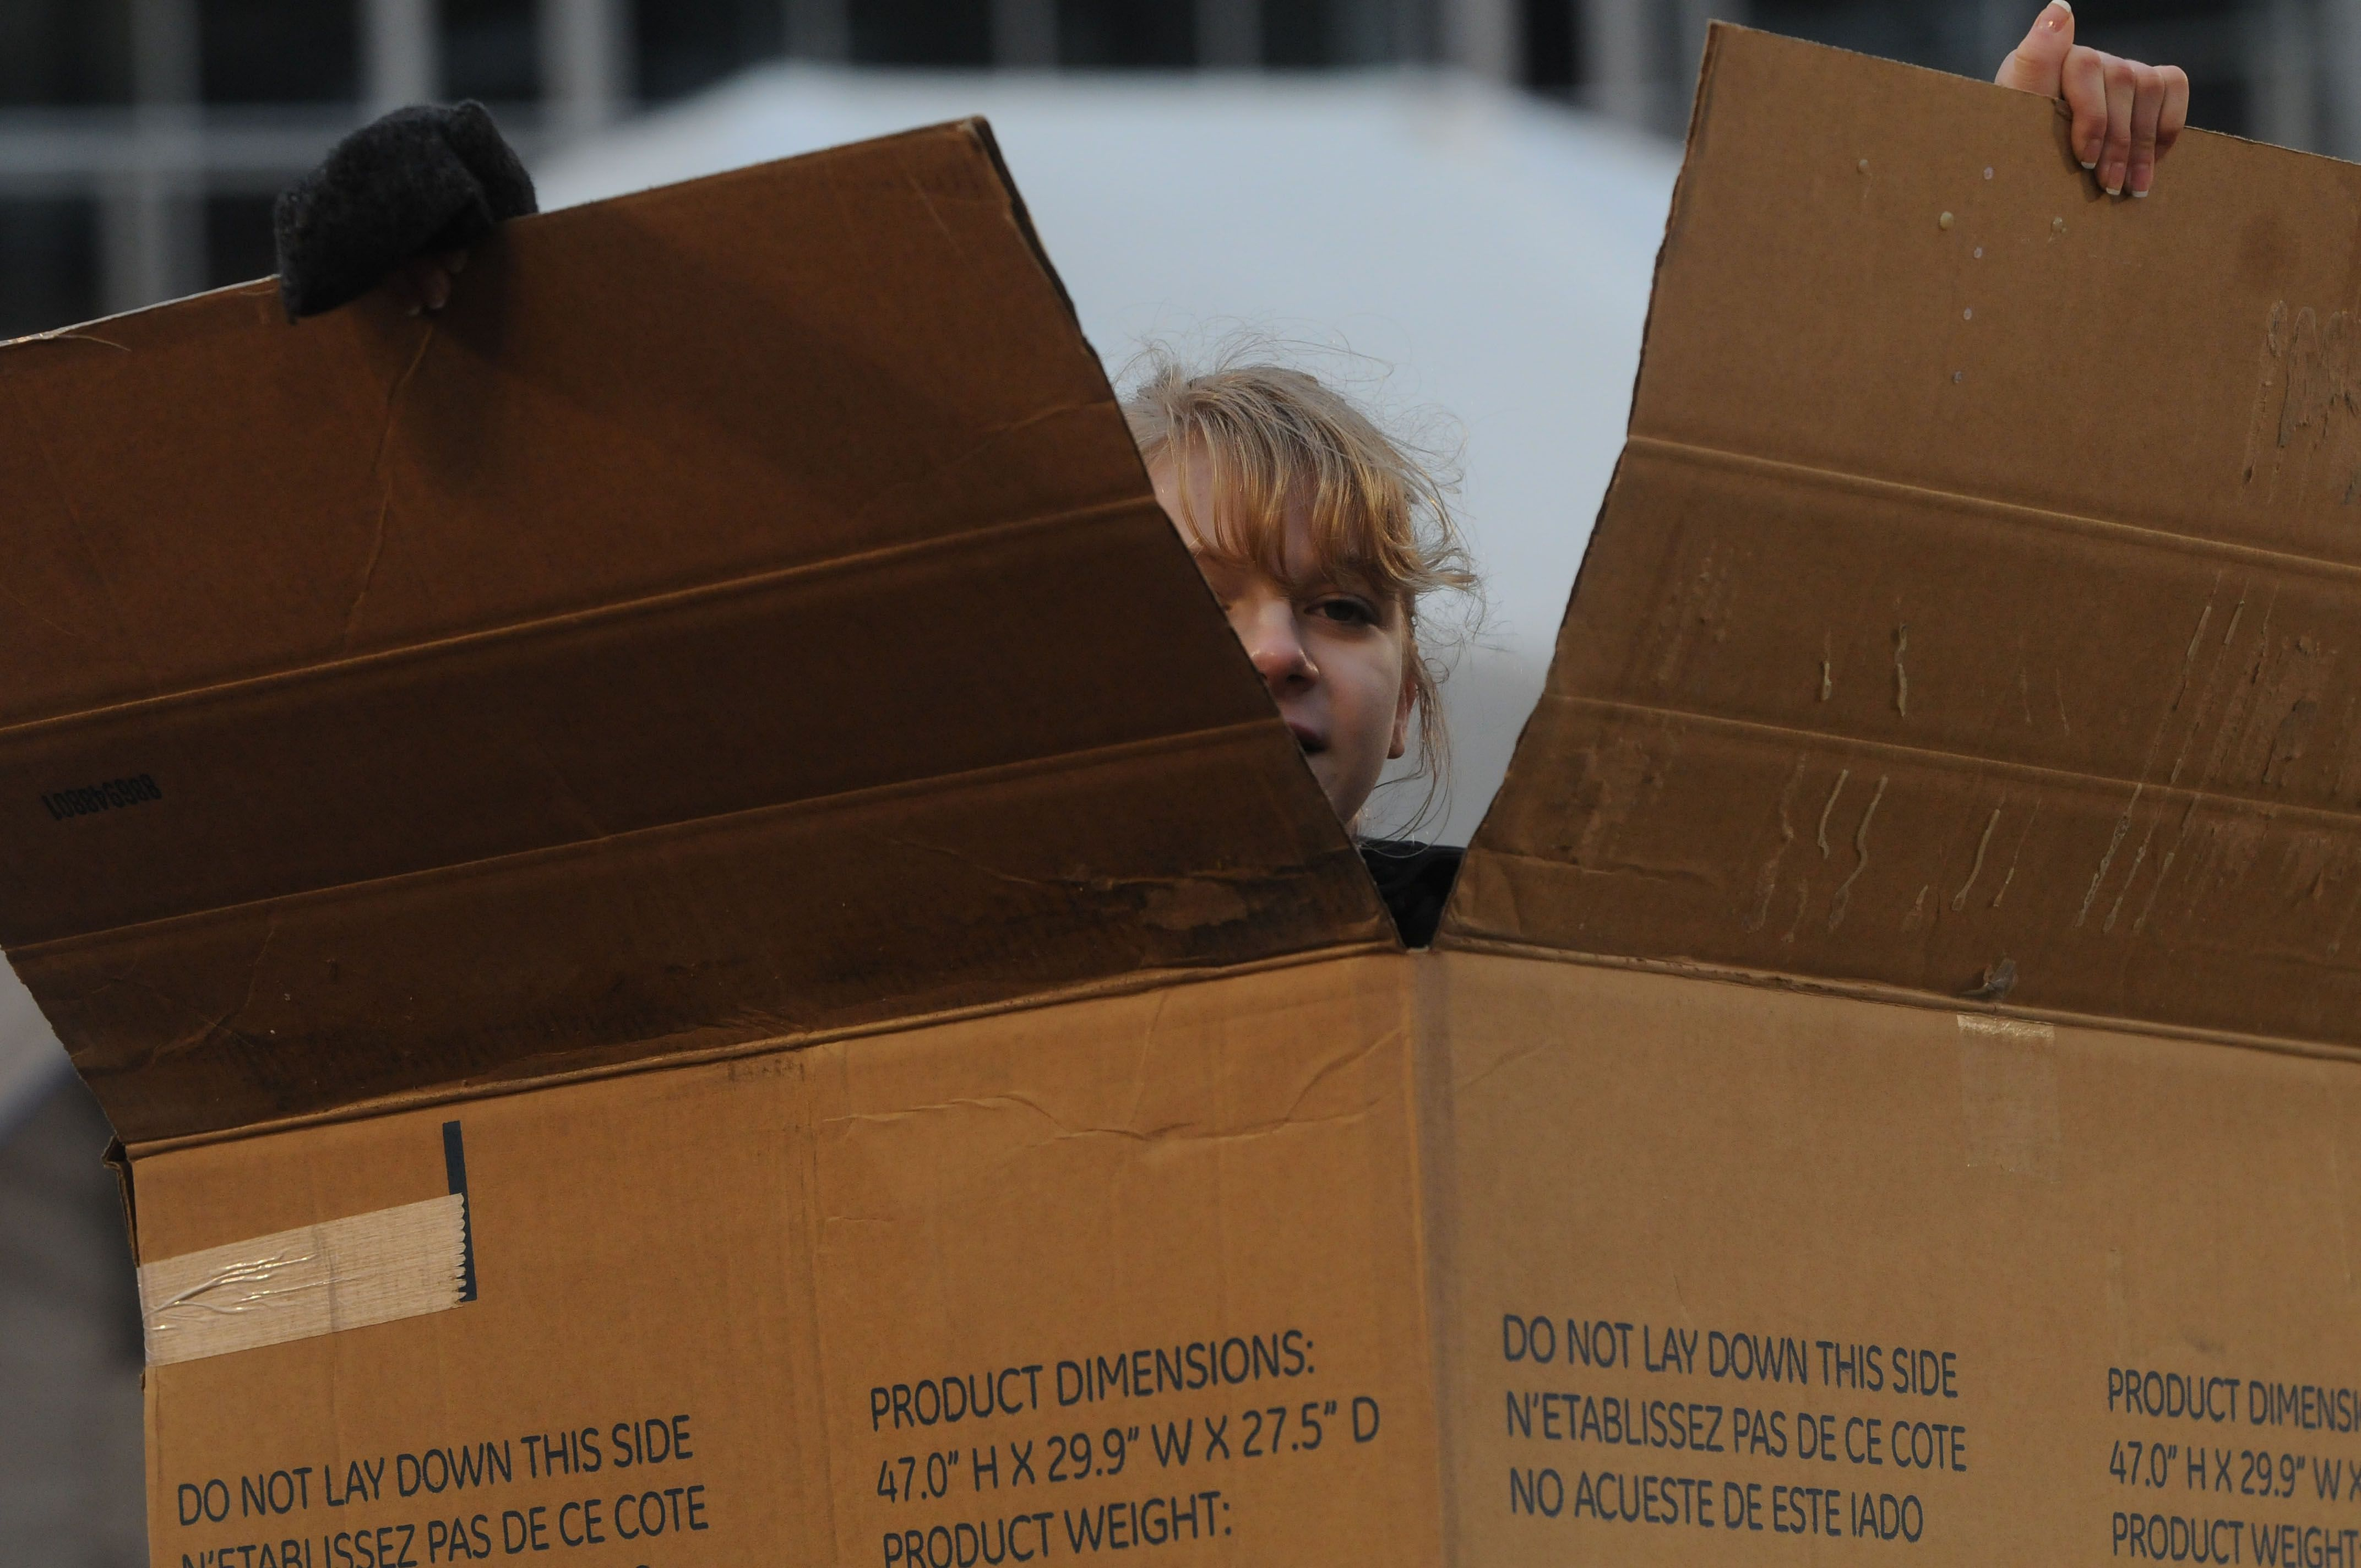 """Lara Murray, a member of Ames High SHEPH group, makes a shelter with cardboard boxes during the """"Reggie's Sleepout""""  event at Jack Trice Stadium Saturday, March 25, 2017, in Ames, Iowa. Photo by Nirmalendu Majumdar/Ames Tribune http://www.amestrib.com/news/20170325/community-braves-cold-rain-for-youth-homelessness-at-reggie8217s-sleepout"""